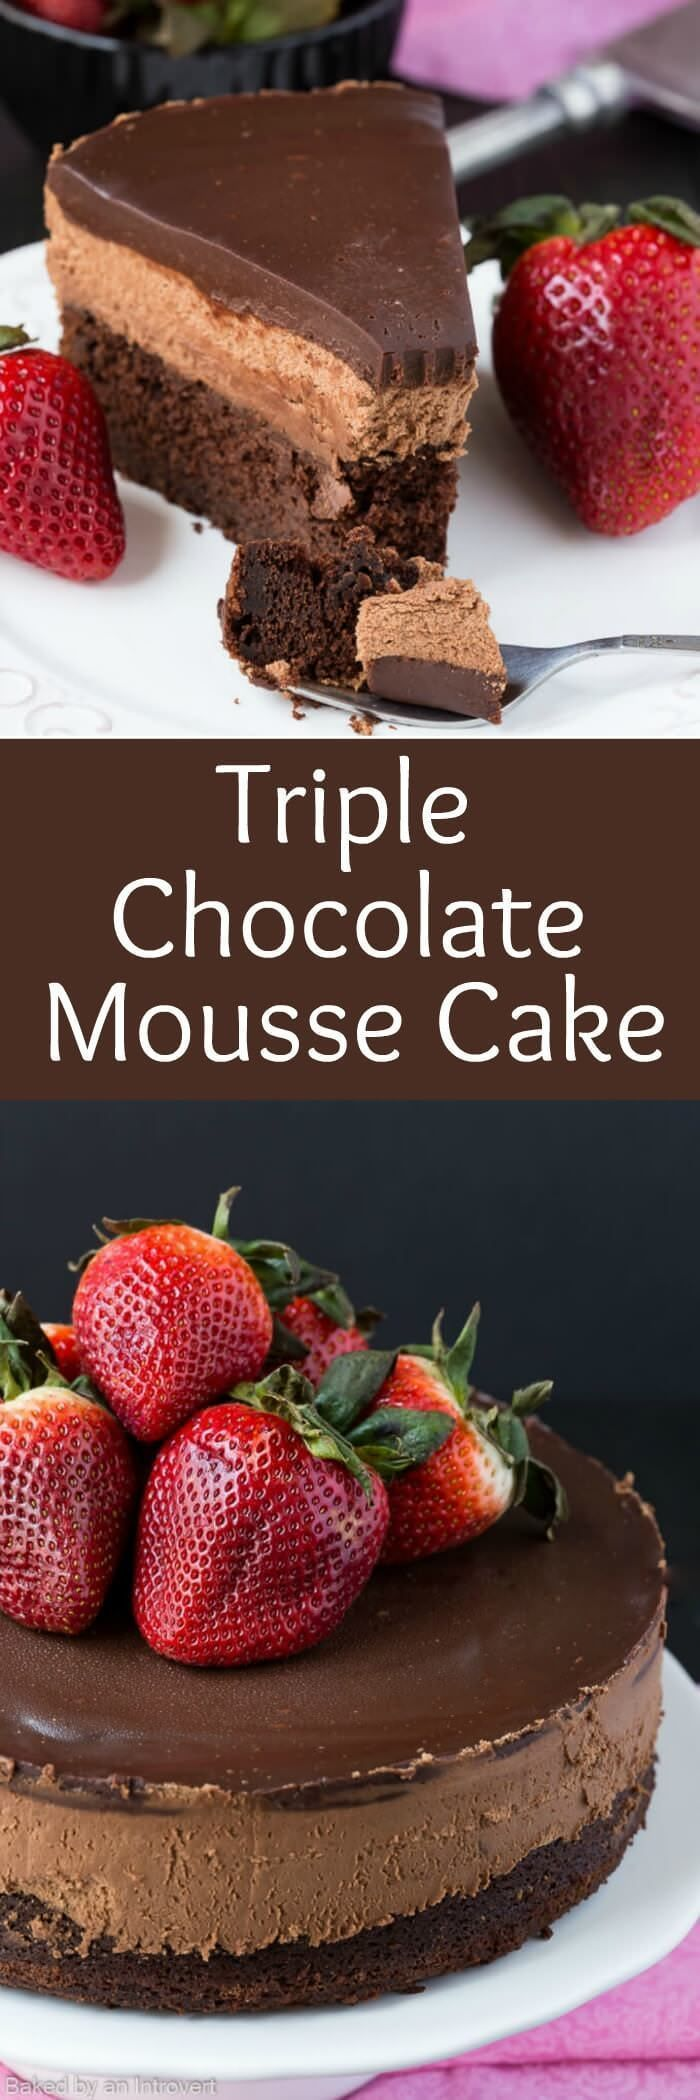 Triple chocolate Mousse Cake is the perfect light dessert recipe. Its made with a chocolate cake base, cool creamy mousse filling, and topped with rich dark chocolate ganache. Serve the cake with fresh berries for an extra special treat thats perfect fo